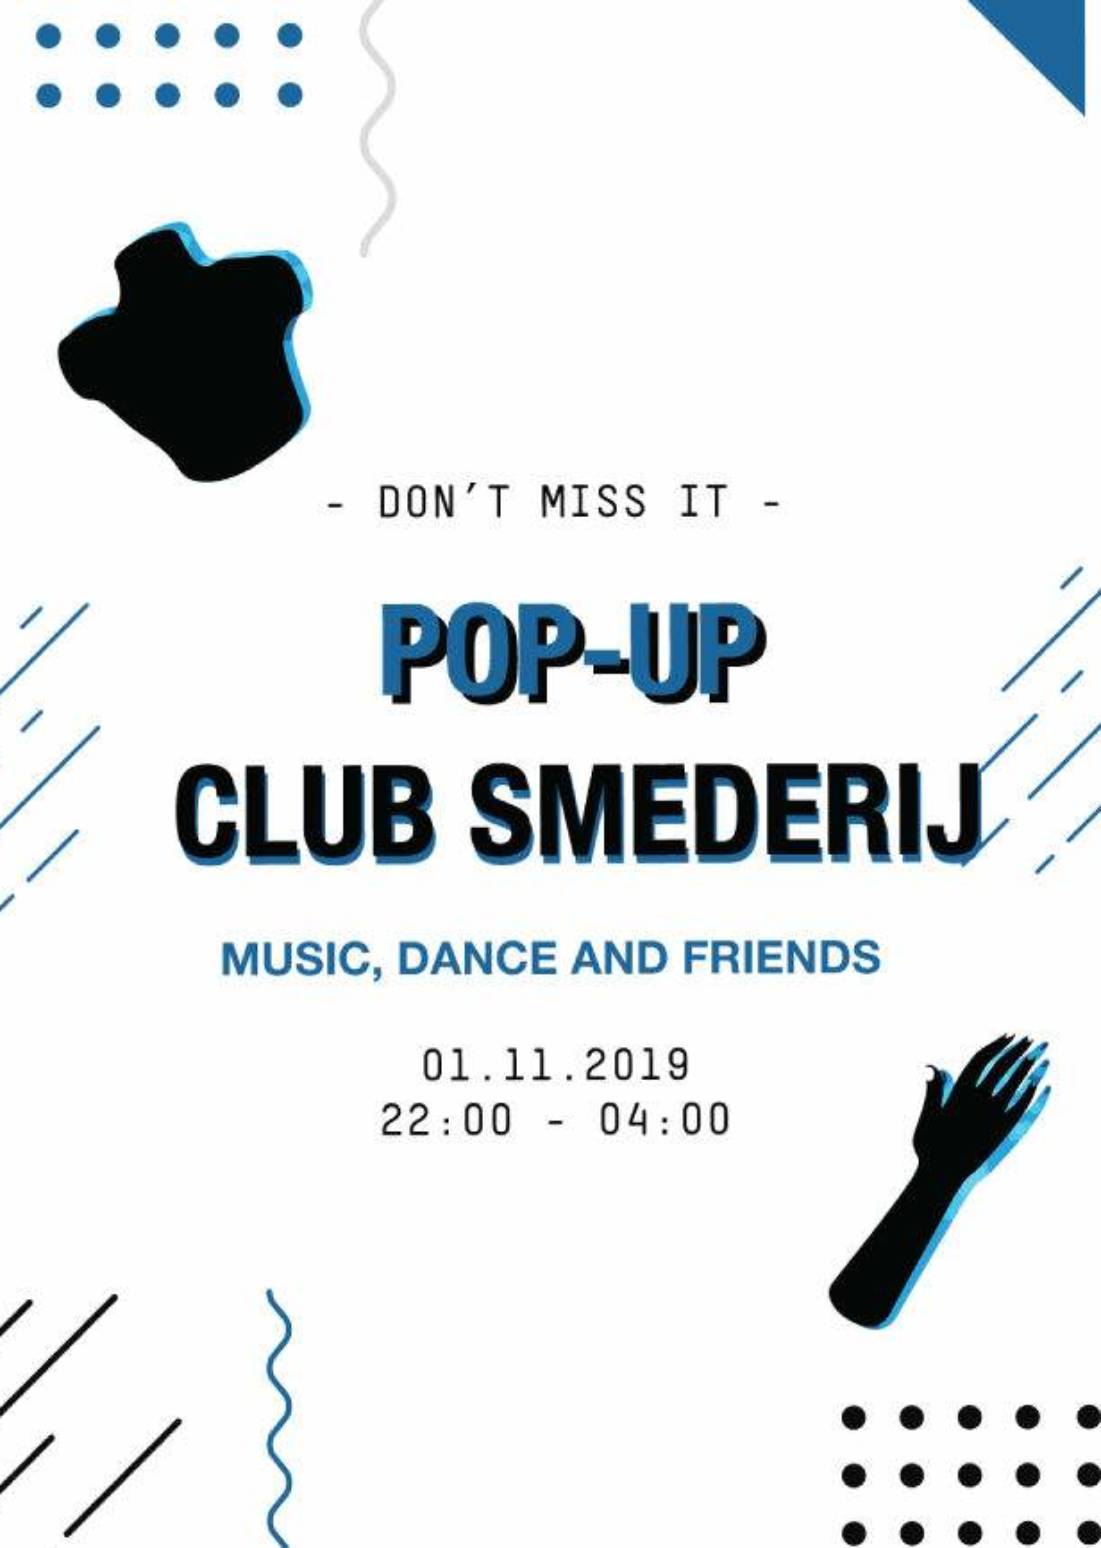 Pop-up Club Smederij